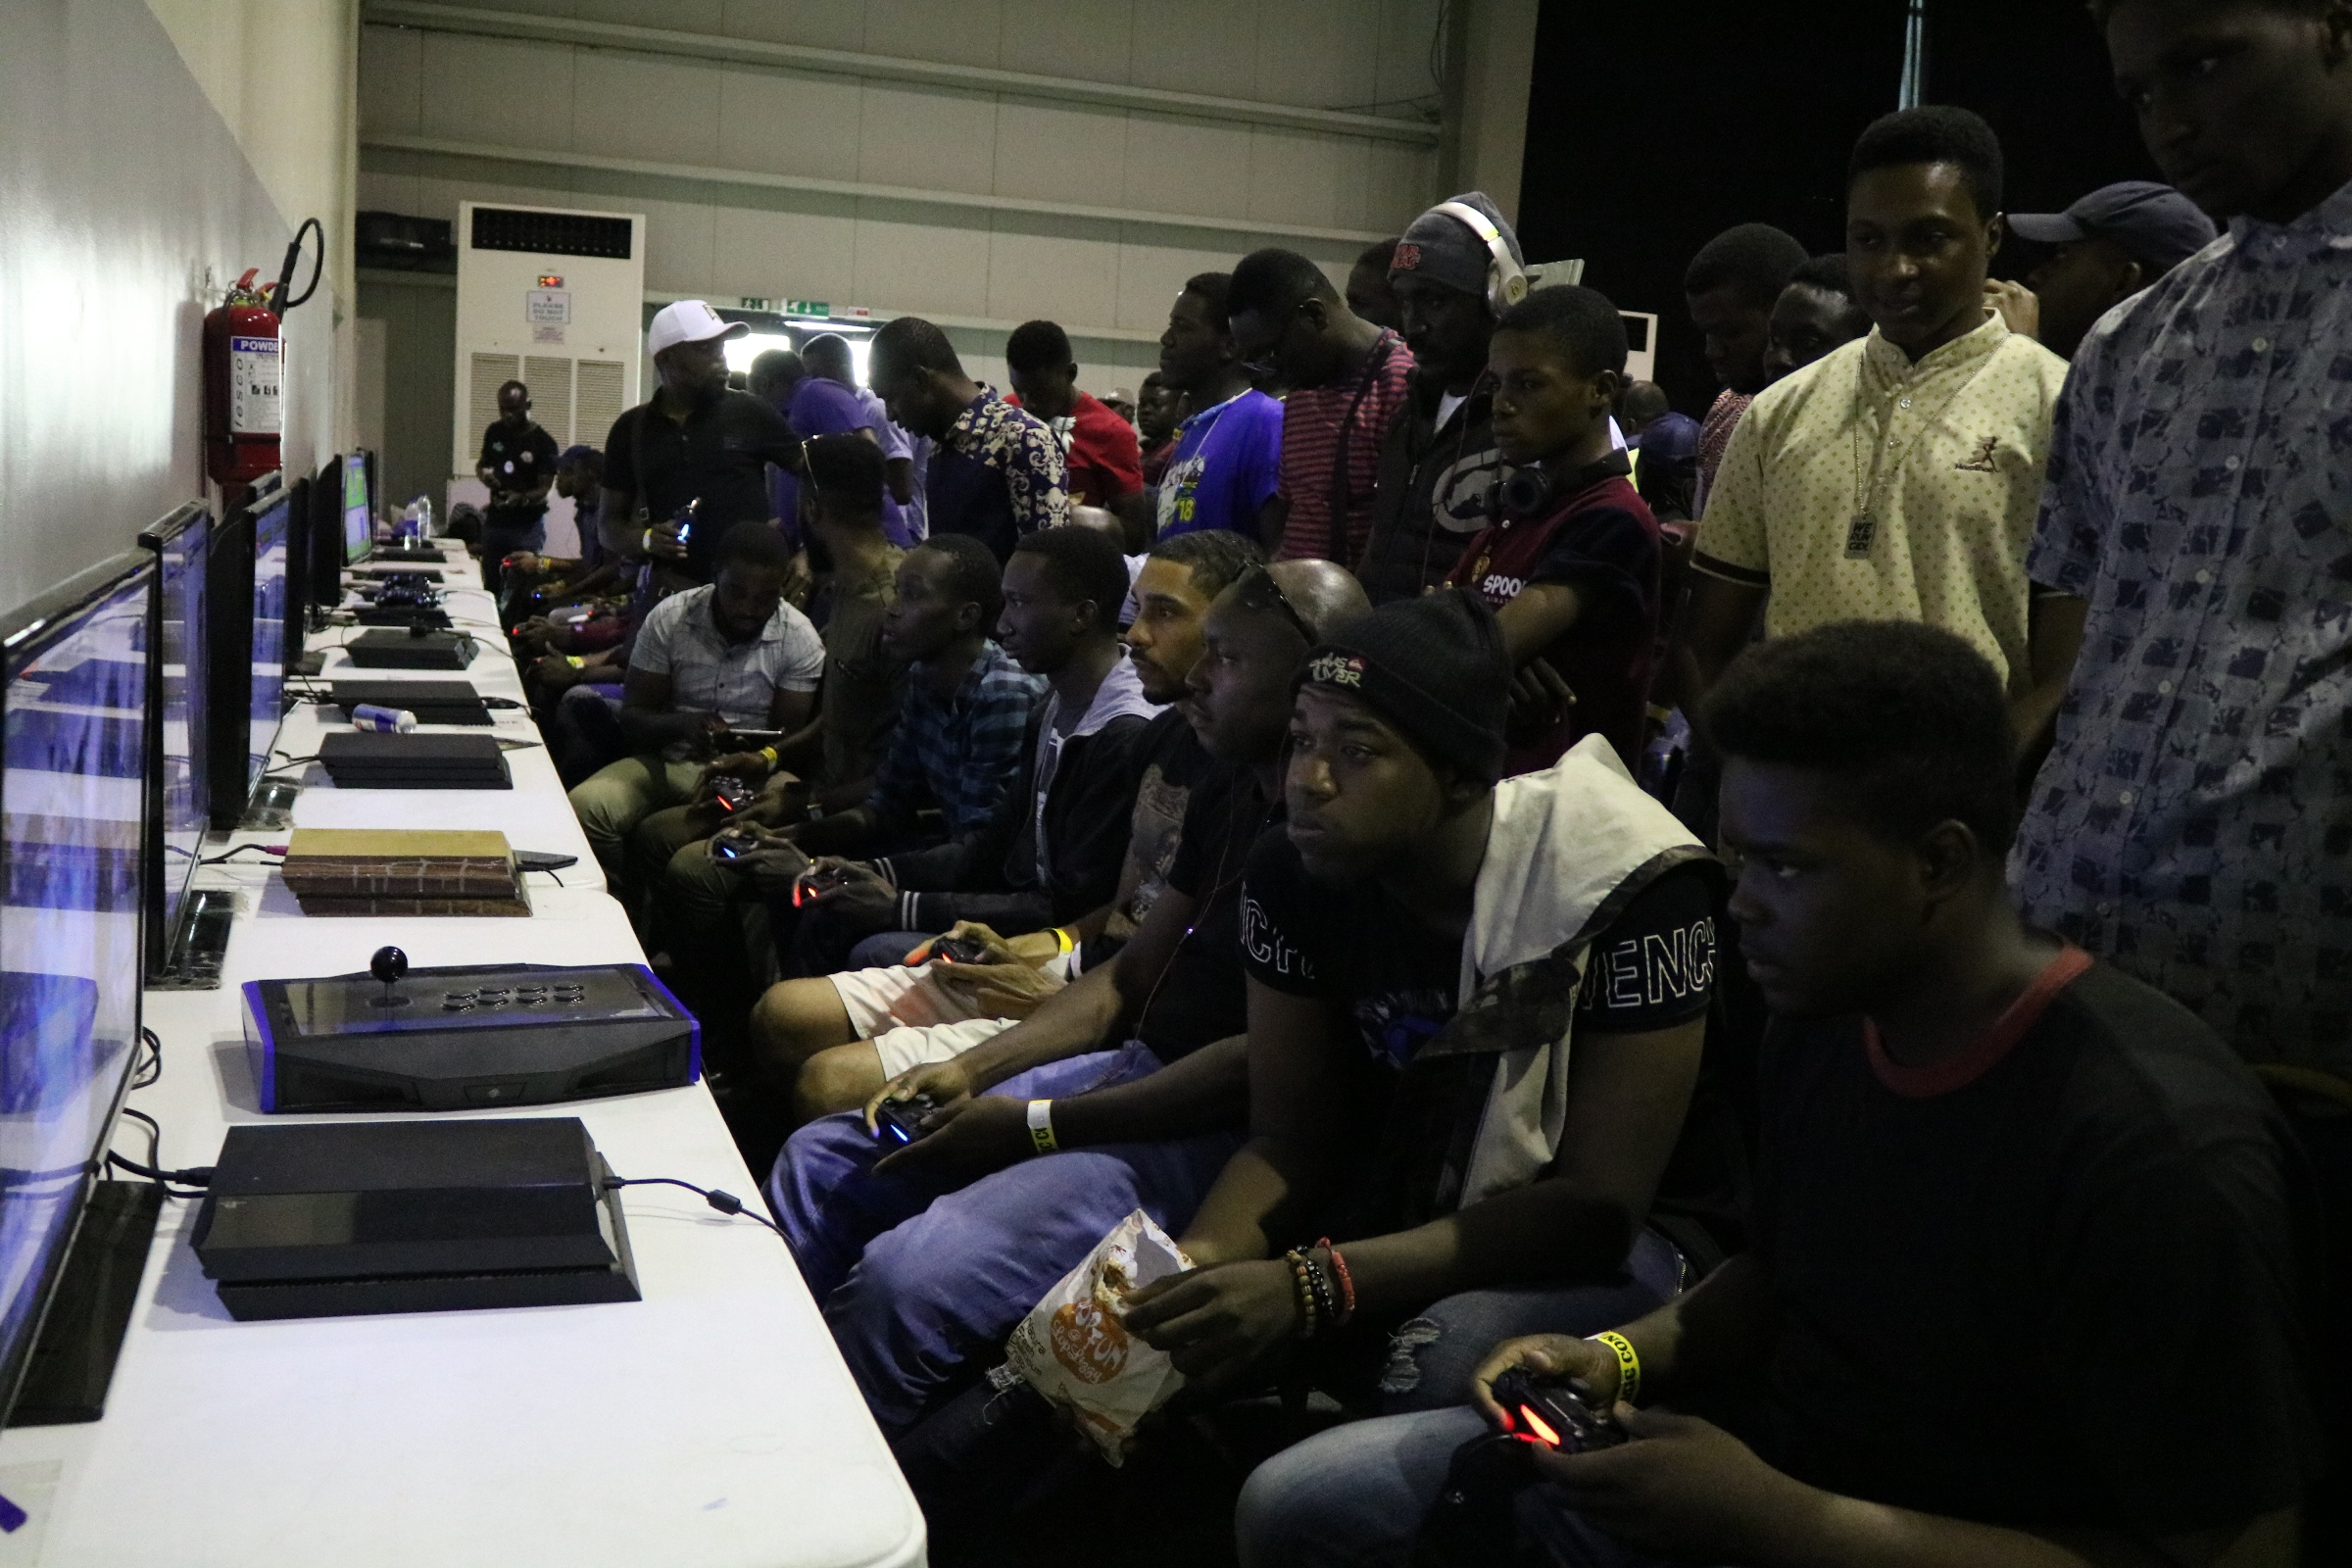 IMG 9529 - Lagos Comic Con 2019: Dates, How To Register For Free And More Details